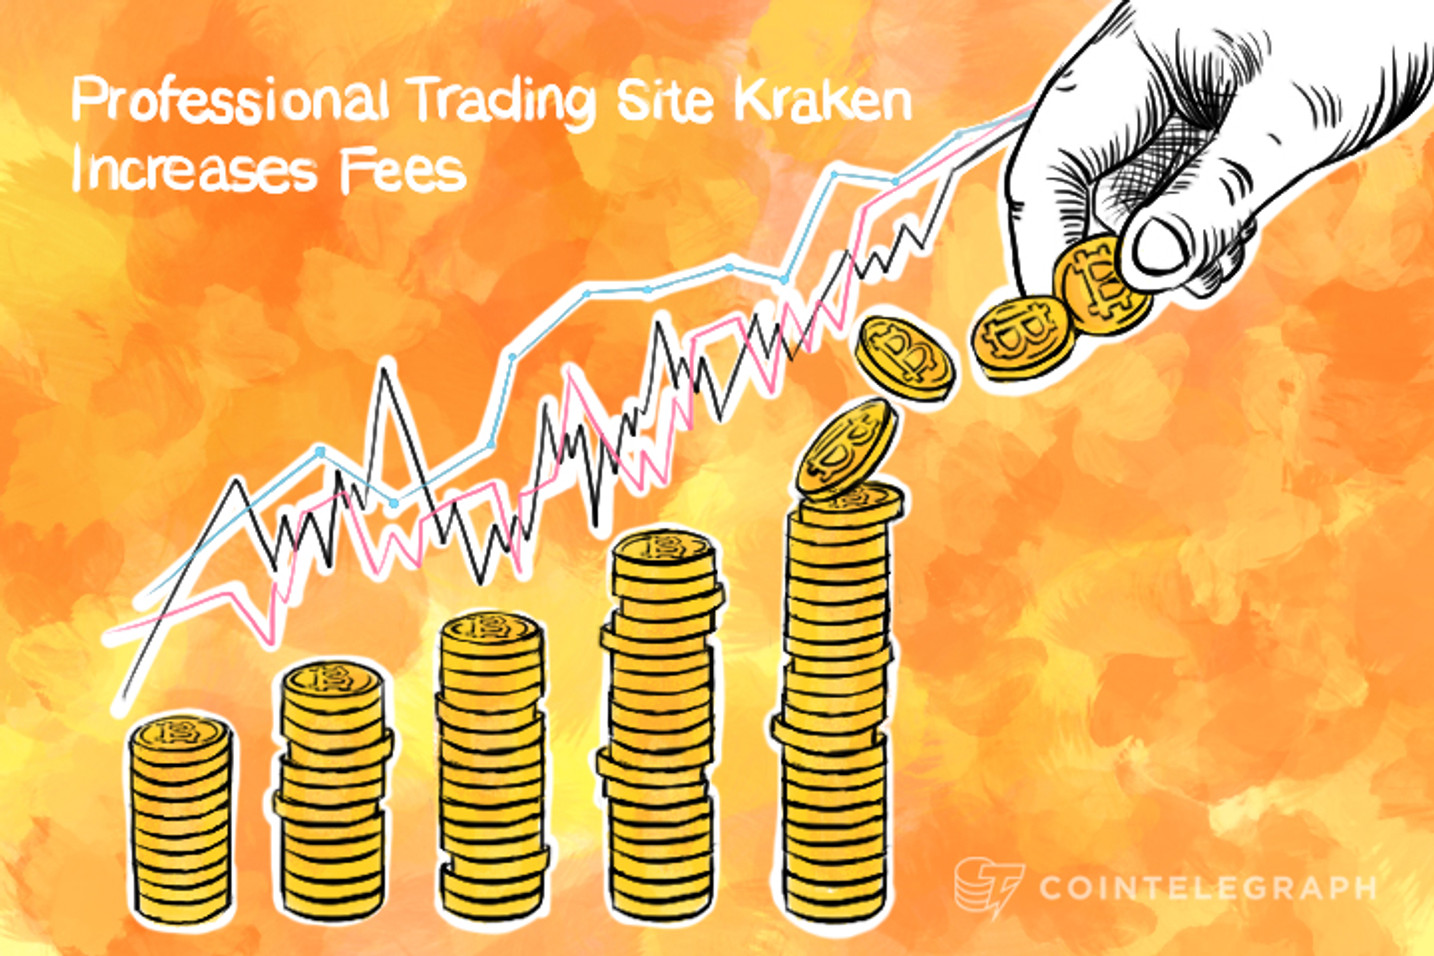 Professional Trading Site Kraken Increases Fees